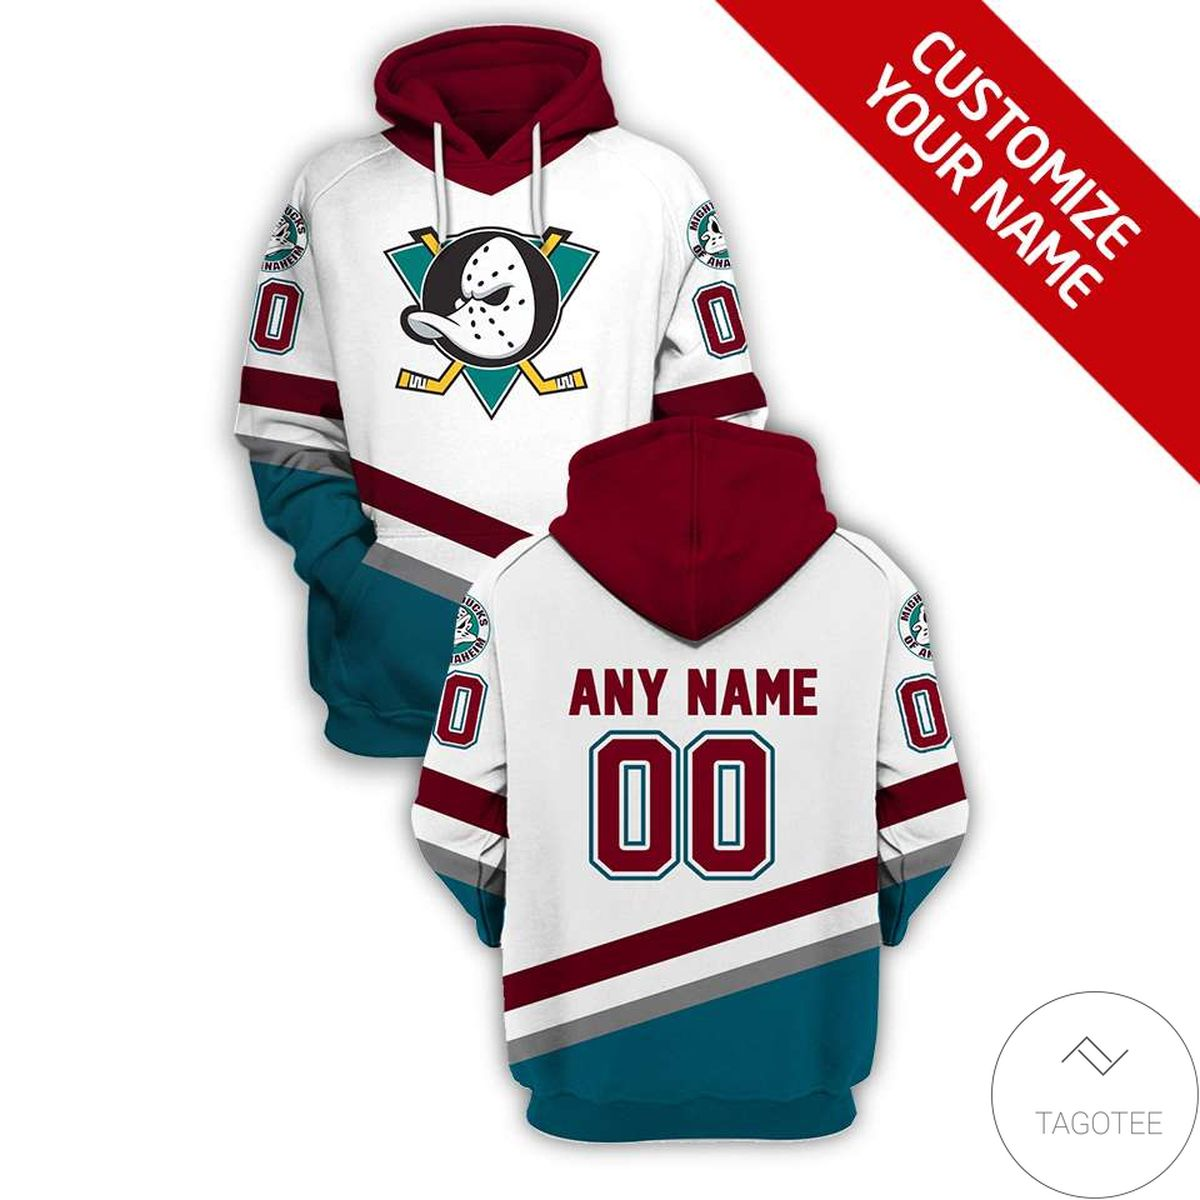 Personalized Name And Number Anaheim Ducks Branded Team 3d Hoodie